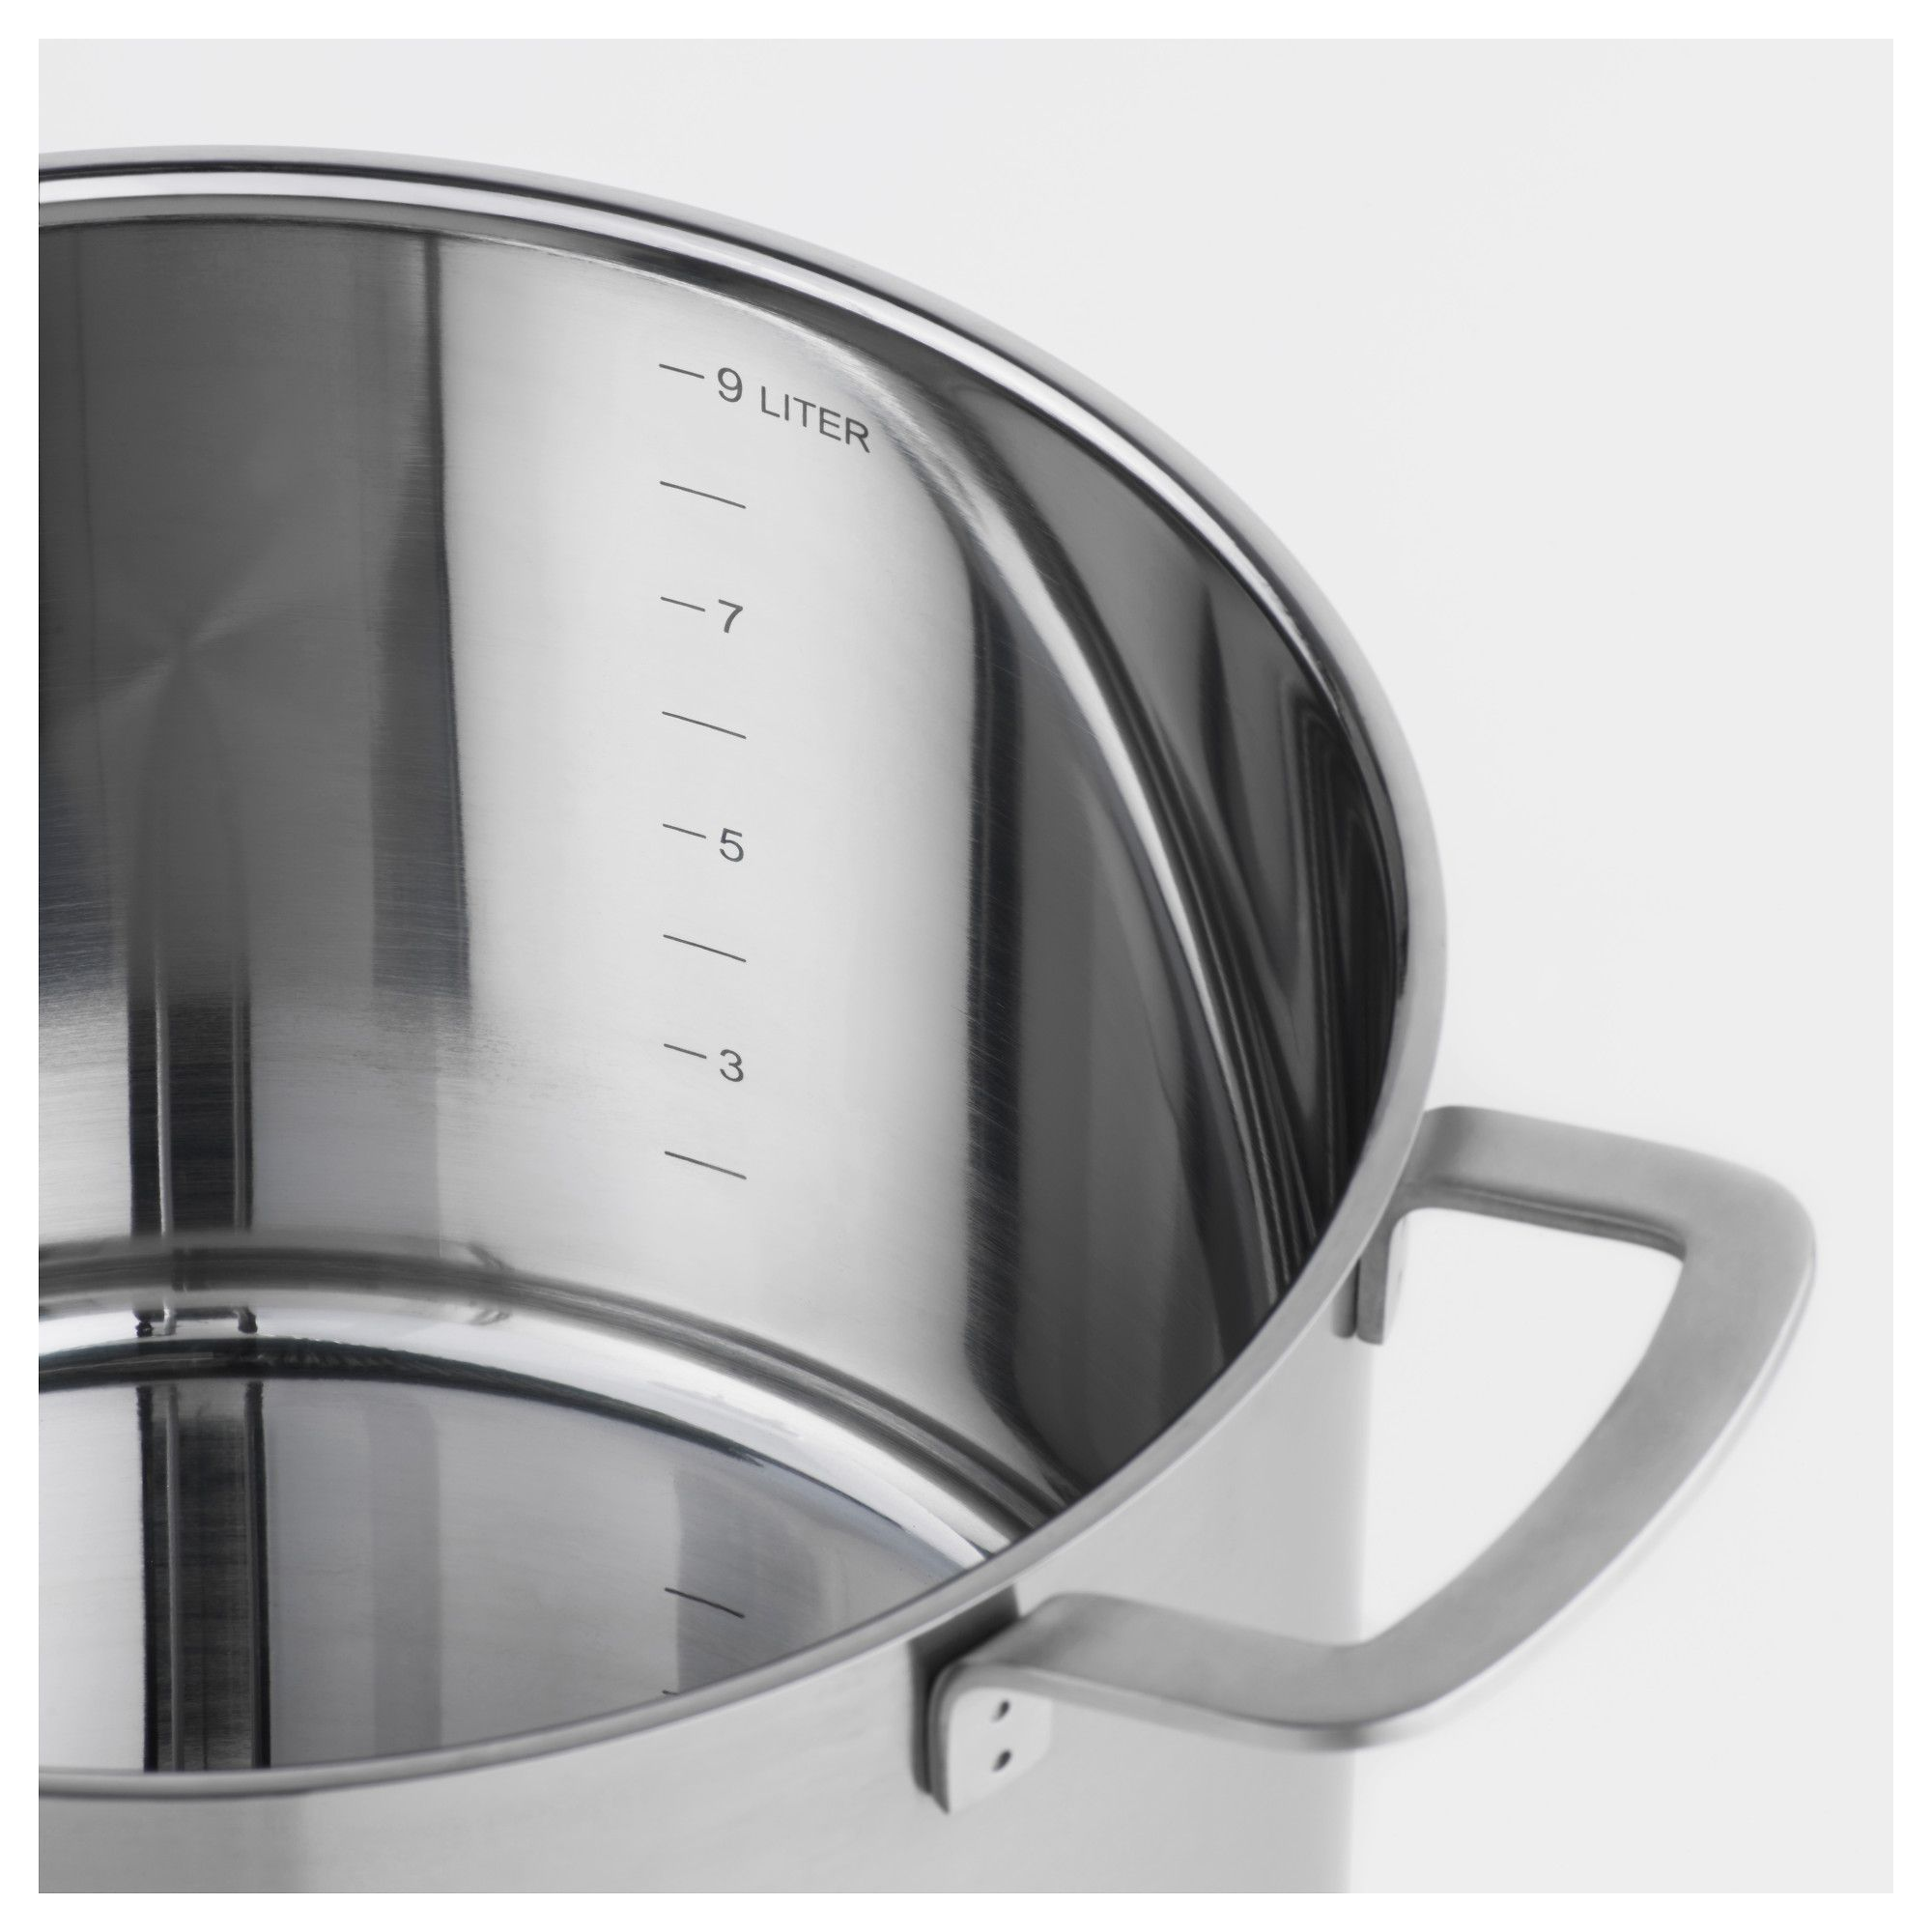 Ikea ikea 365 stainless steel glass stock pot with lid